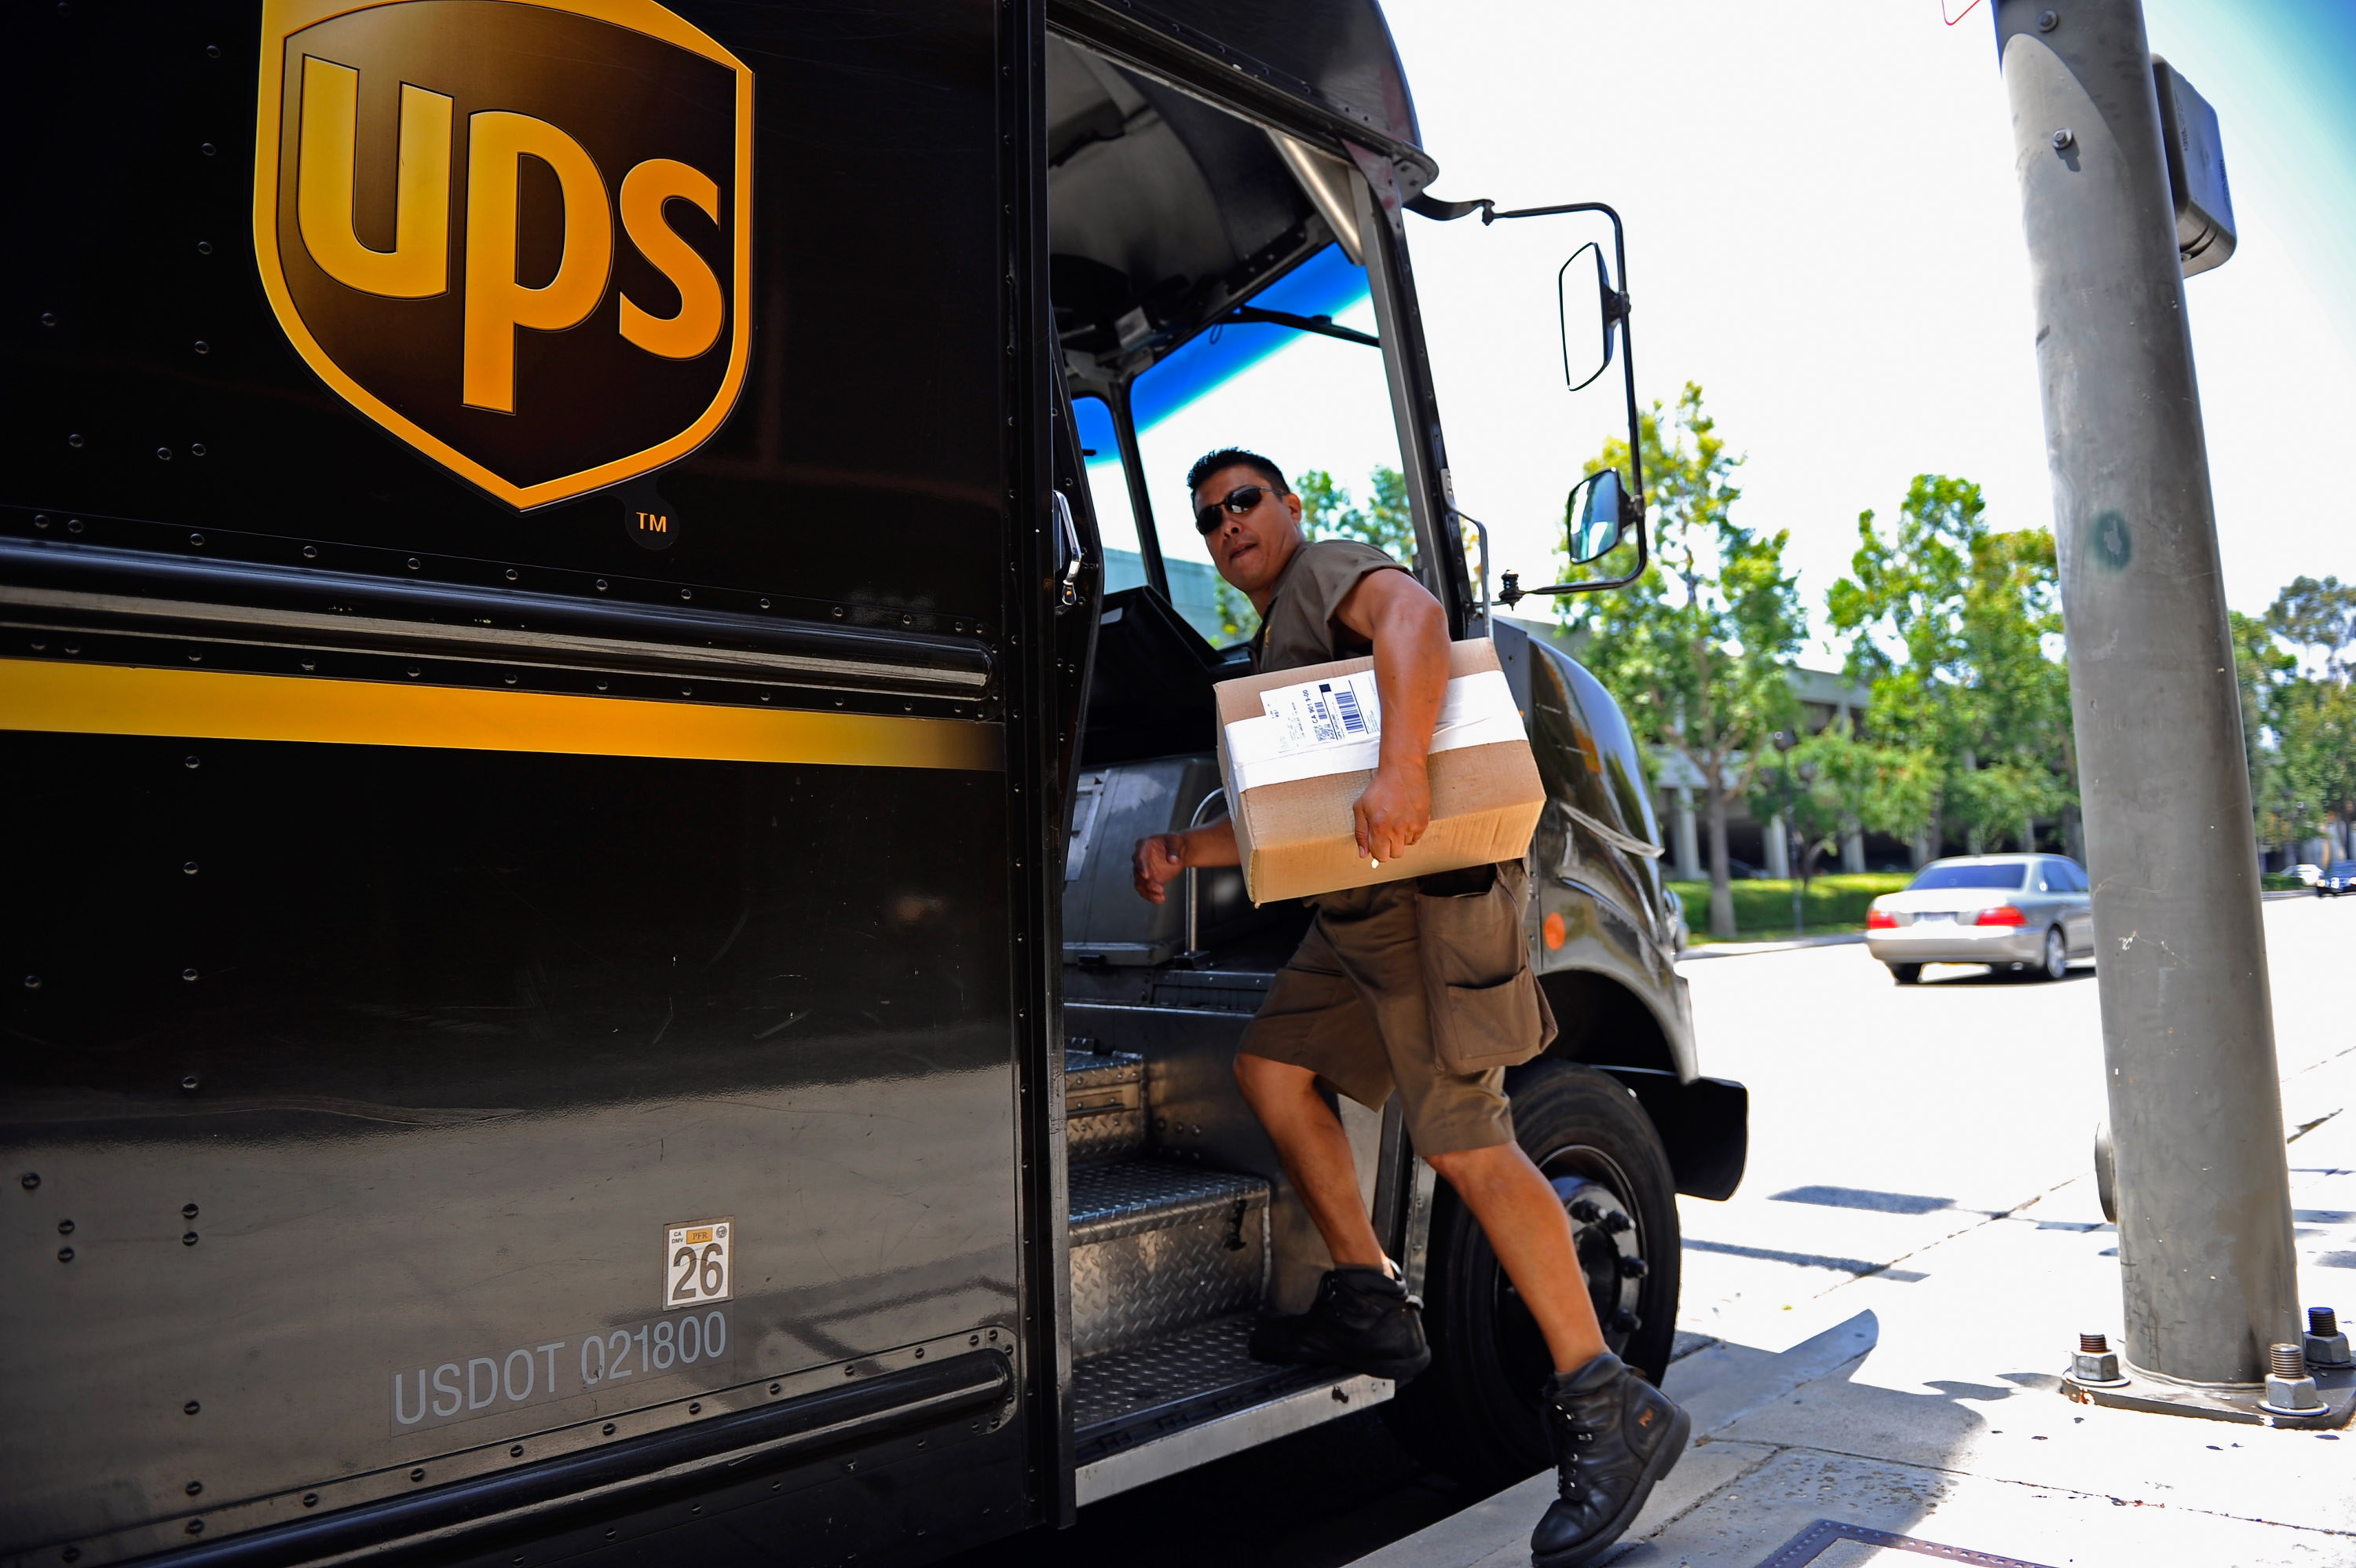 A United Parcel Service (UPS) driver delivers packages on July 22, 2010 in Glendale, California.